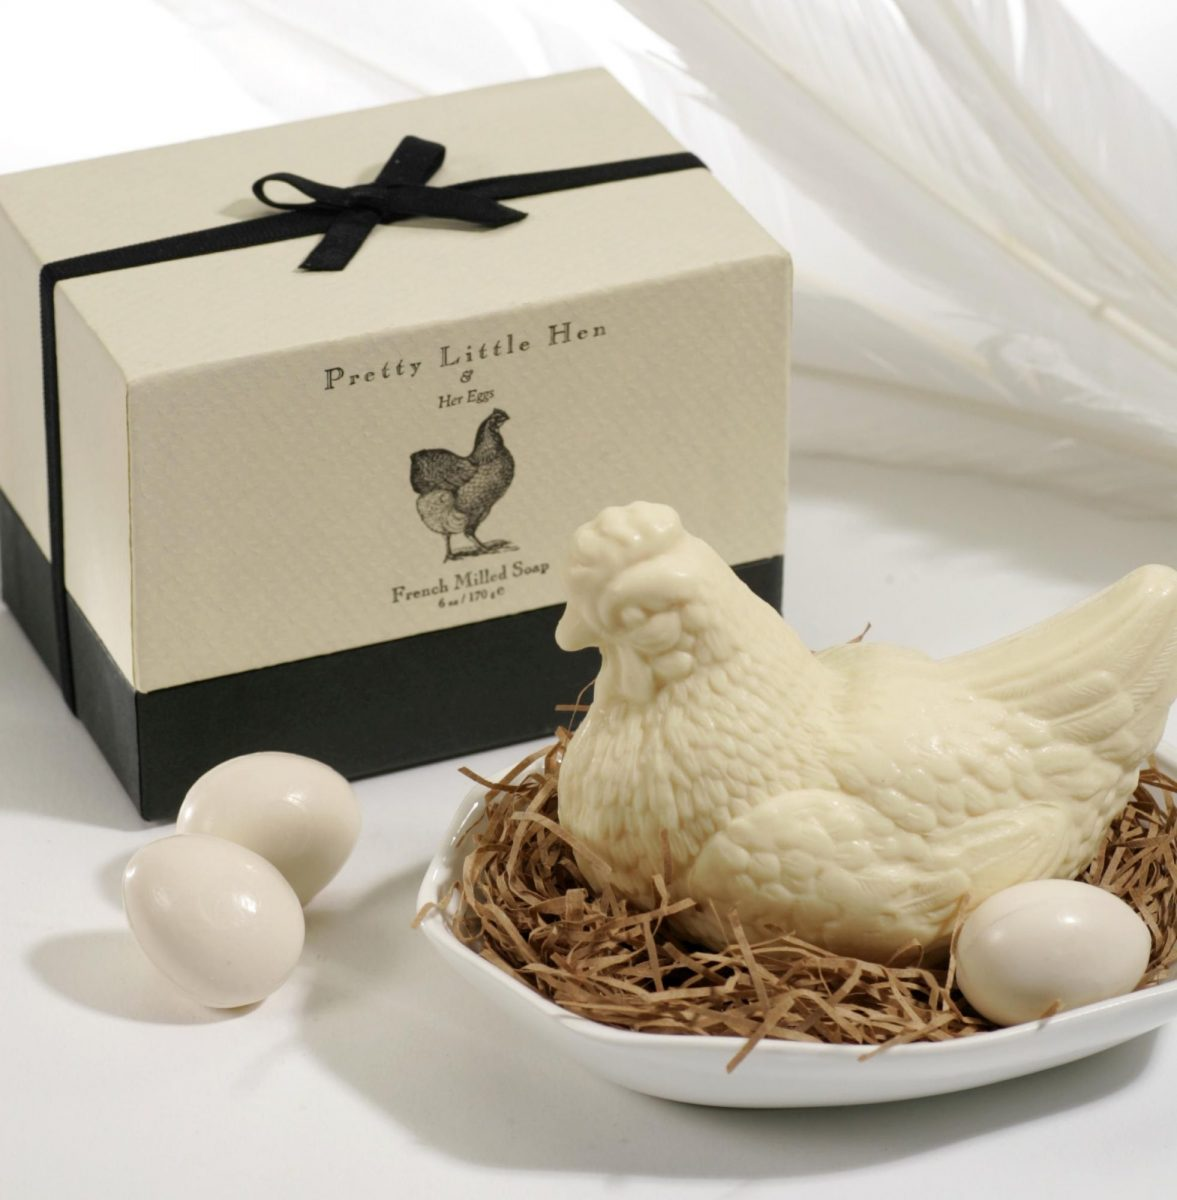 1annabel-james_sitting-hen-and-egg-soaps-in-porcelain-dish-1200x1200.jpg